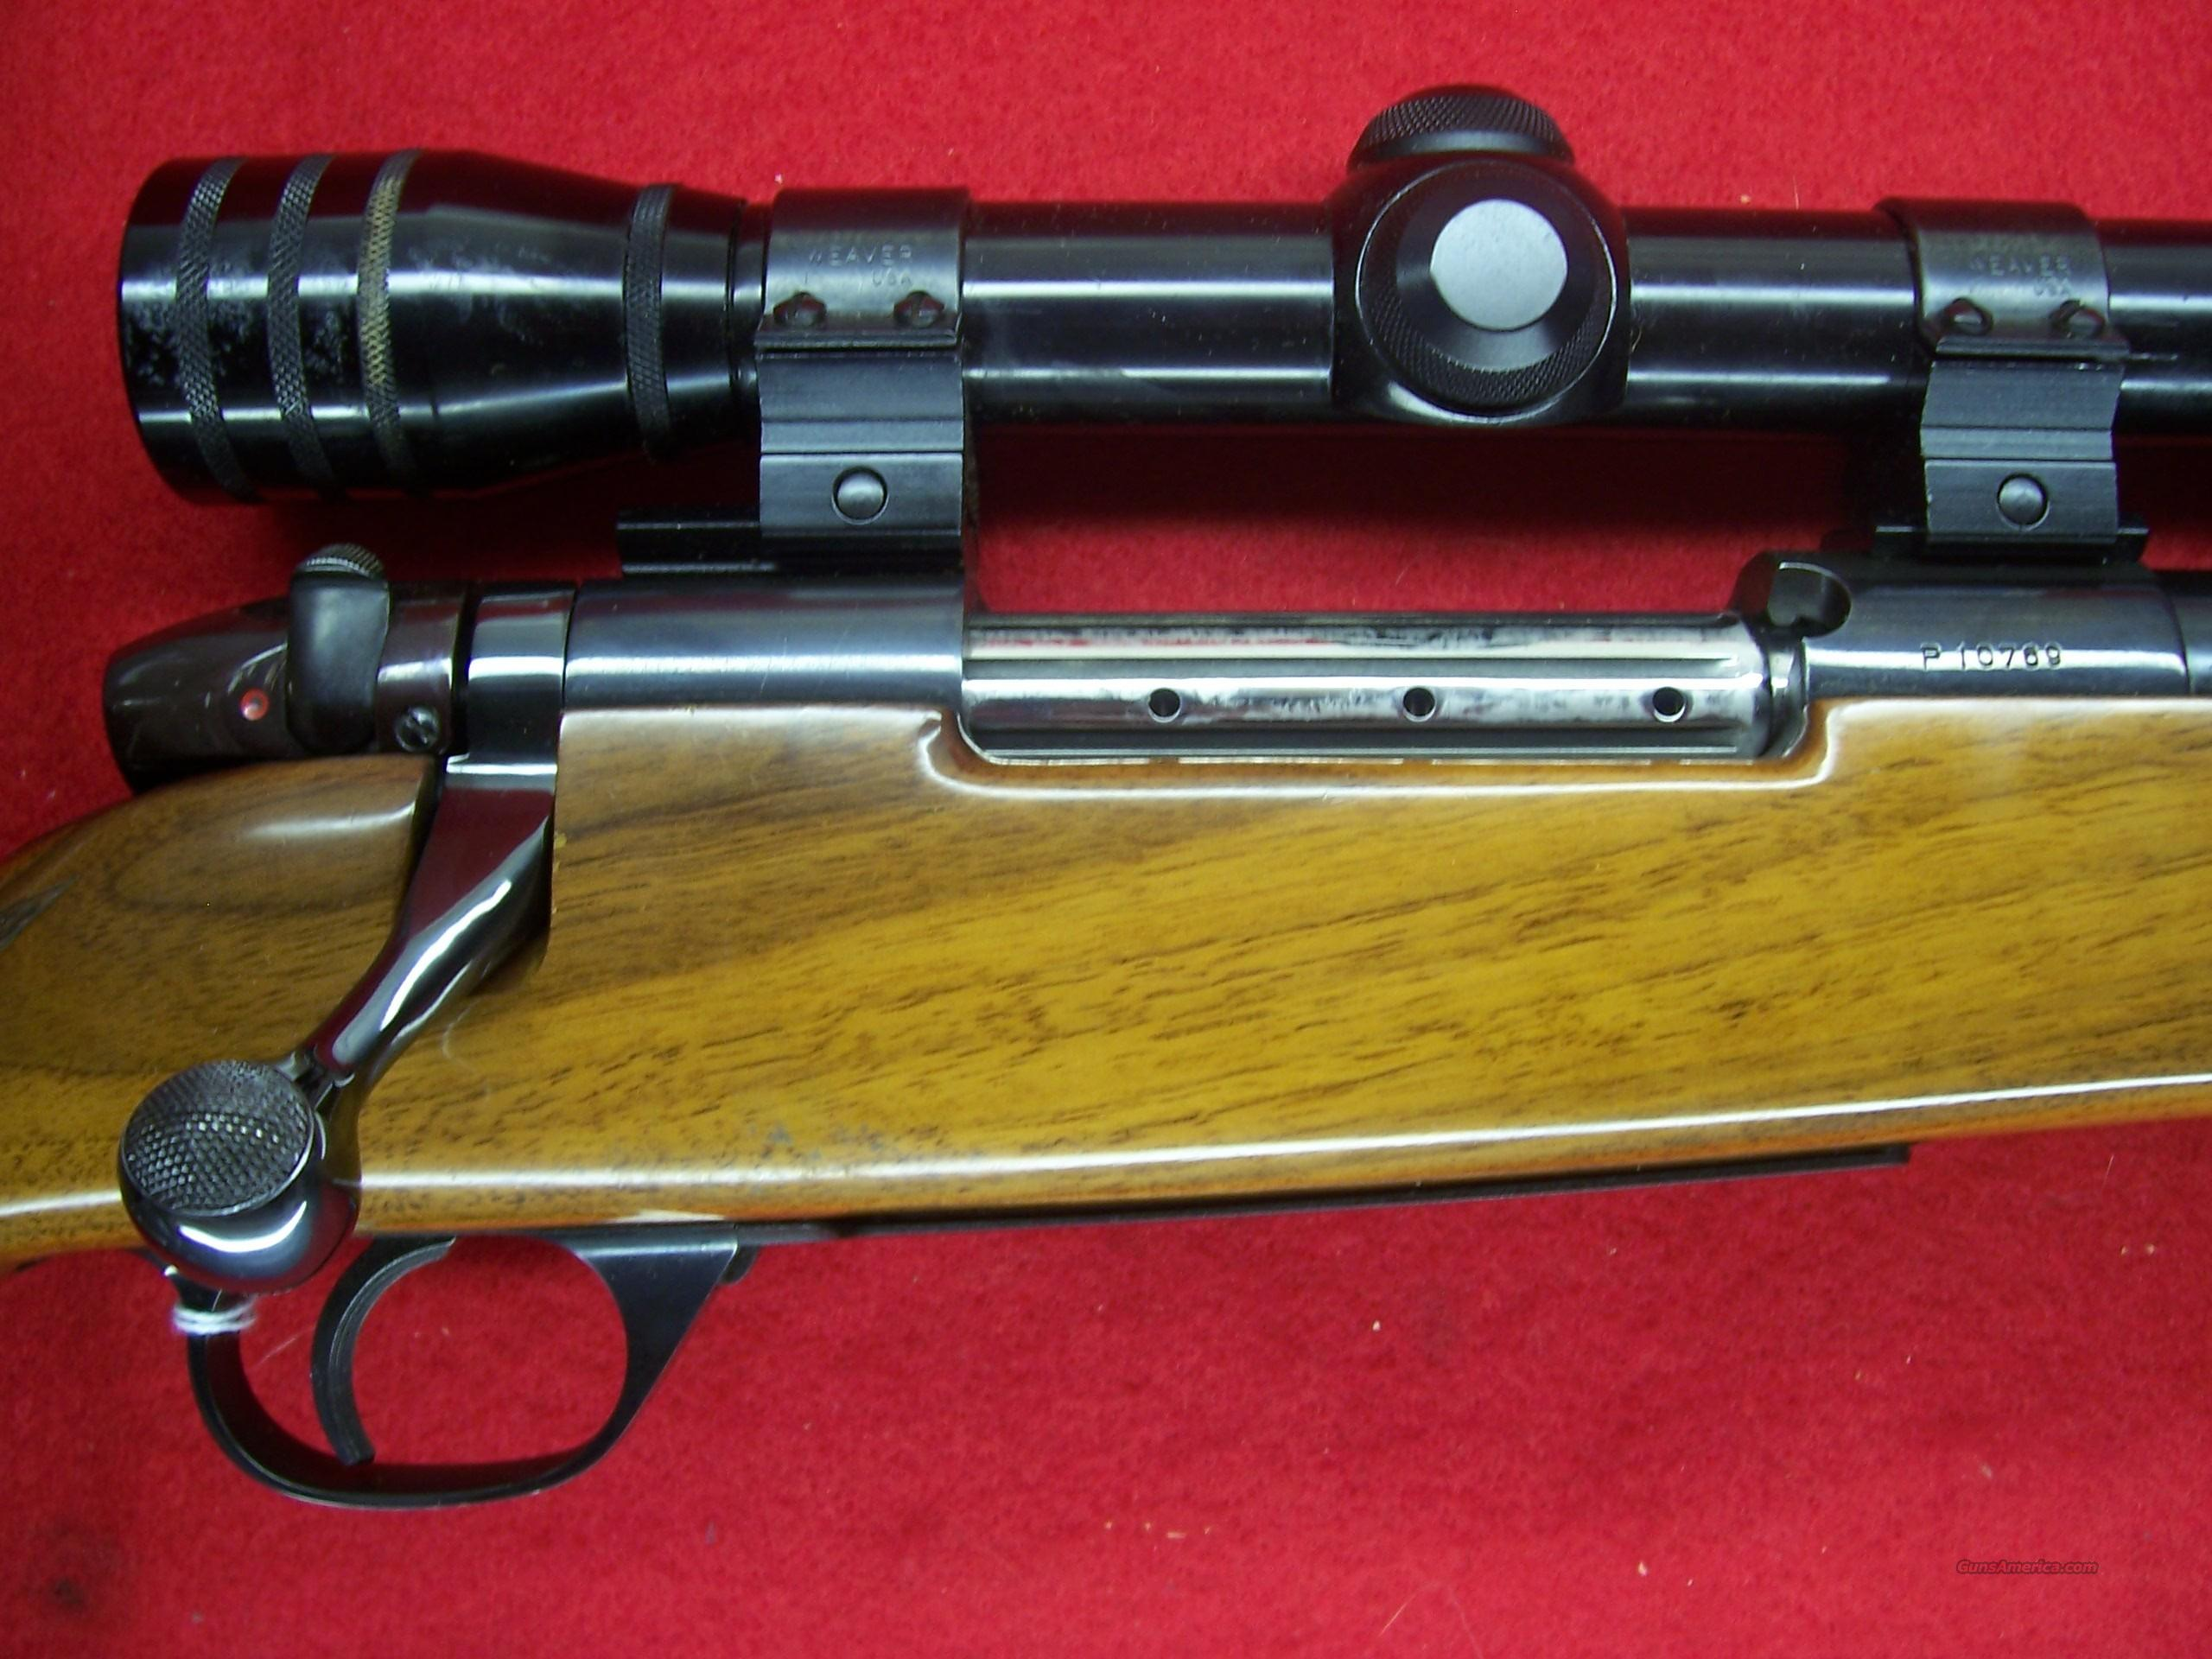 "WEATHERBY RIFLE MK-5  BOLT-ACTION 378.WEATHERBY CAL BARREL 26""  Guns > Rifles > Weatherby Rifles > Sporting"